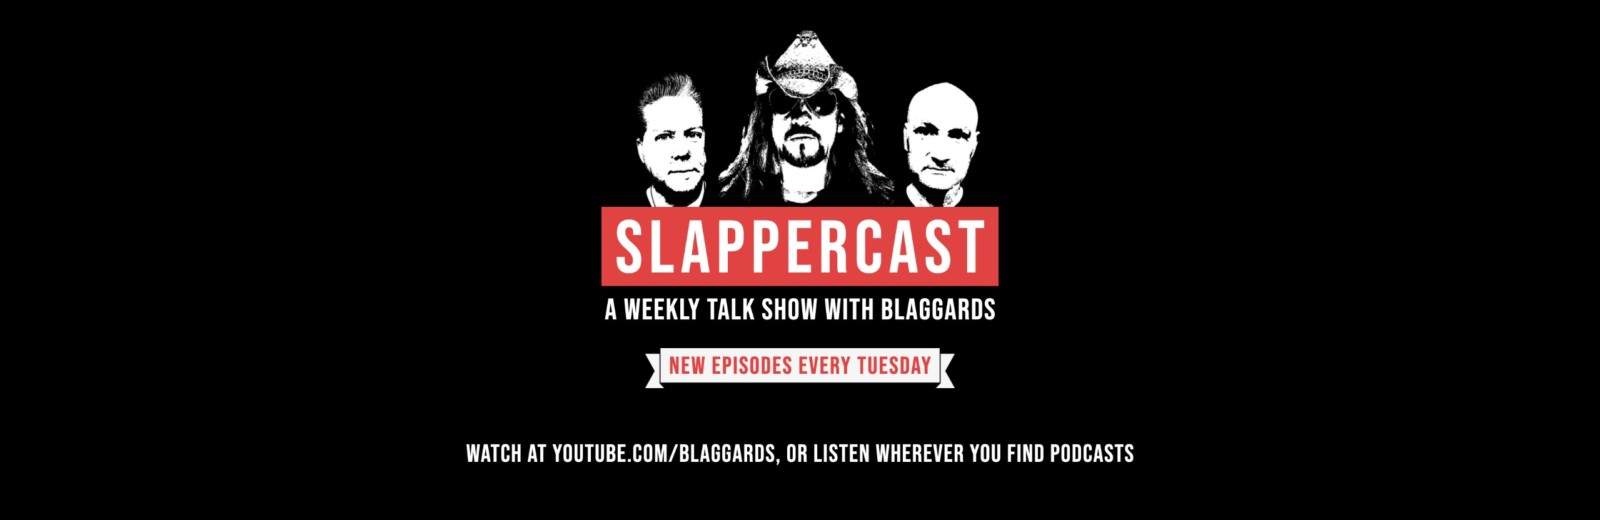 SlapperCast: a weekly talk show with Blaggards - New episodes every Tuesday